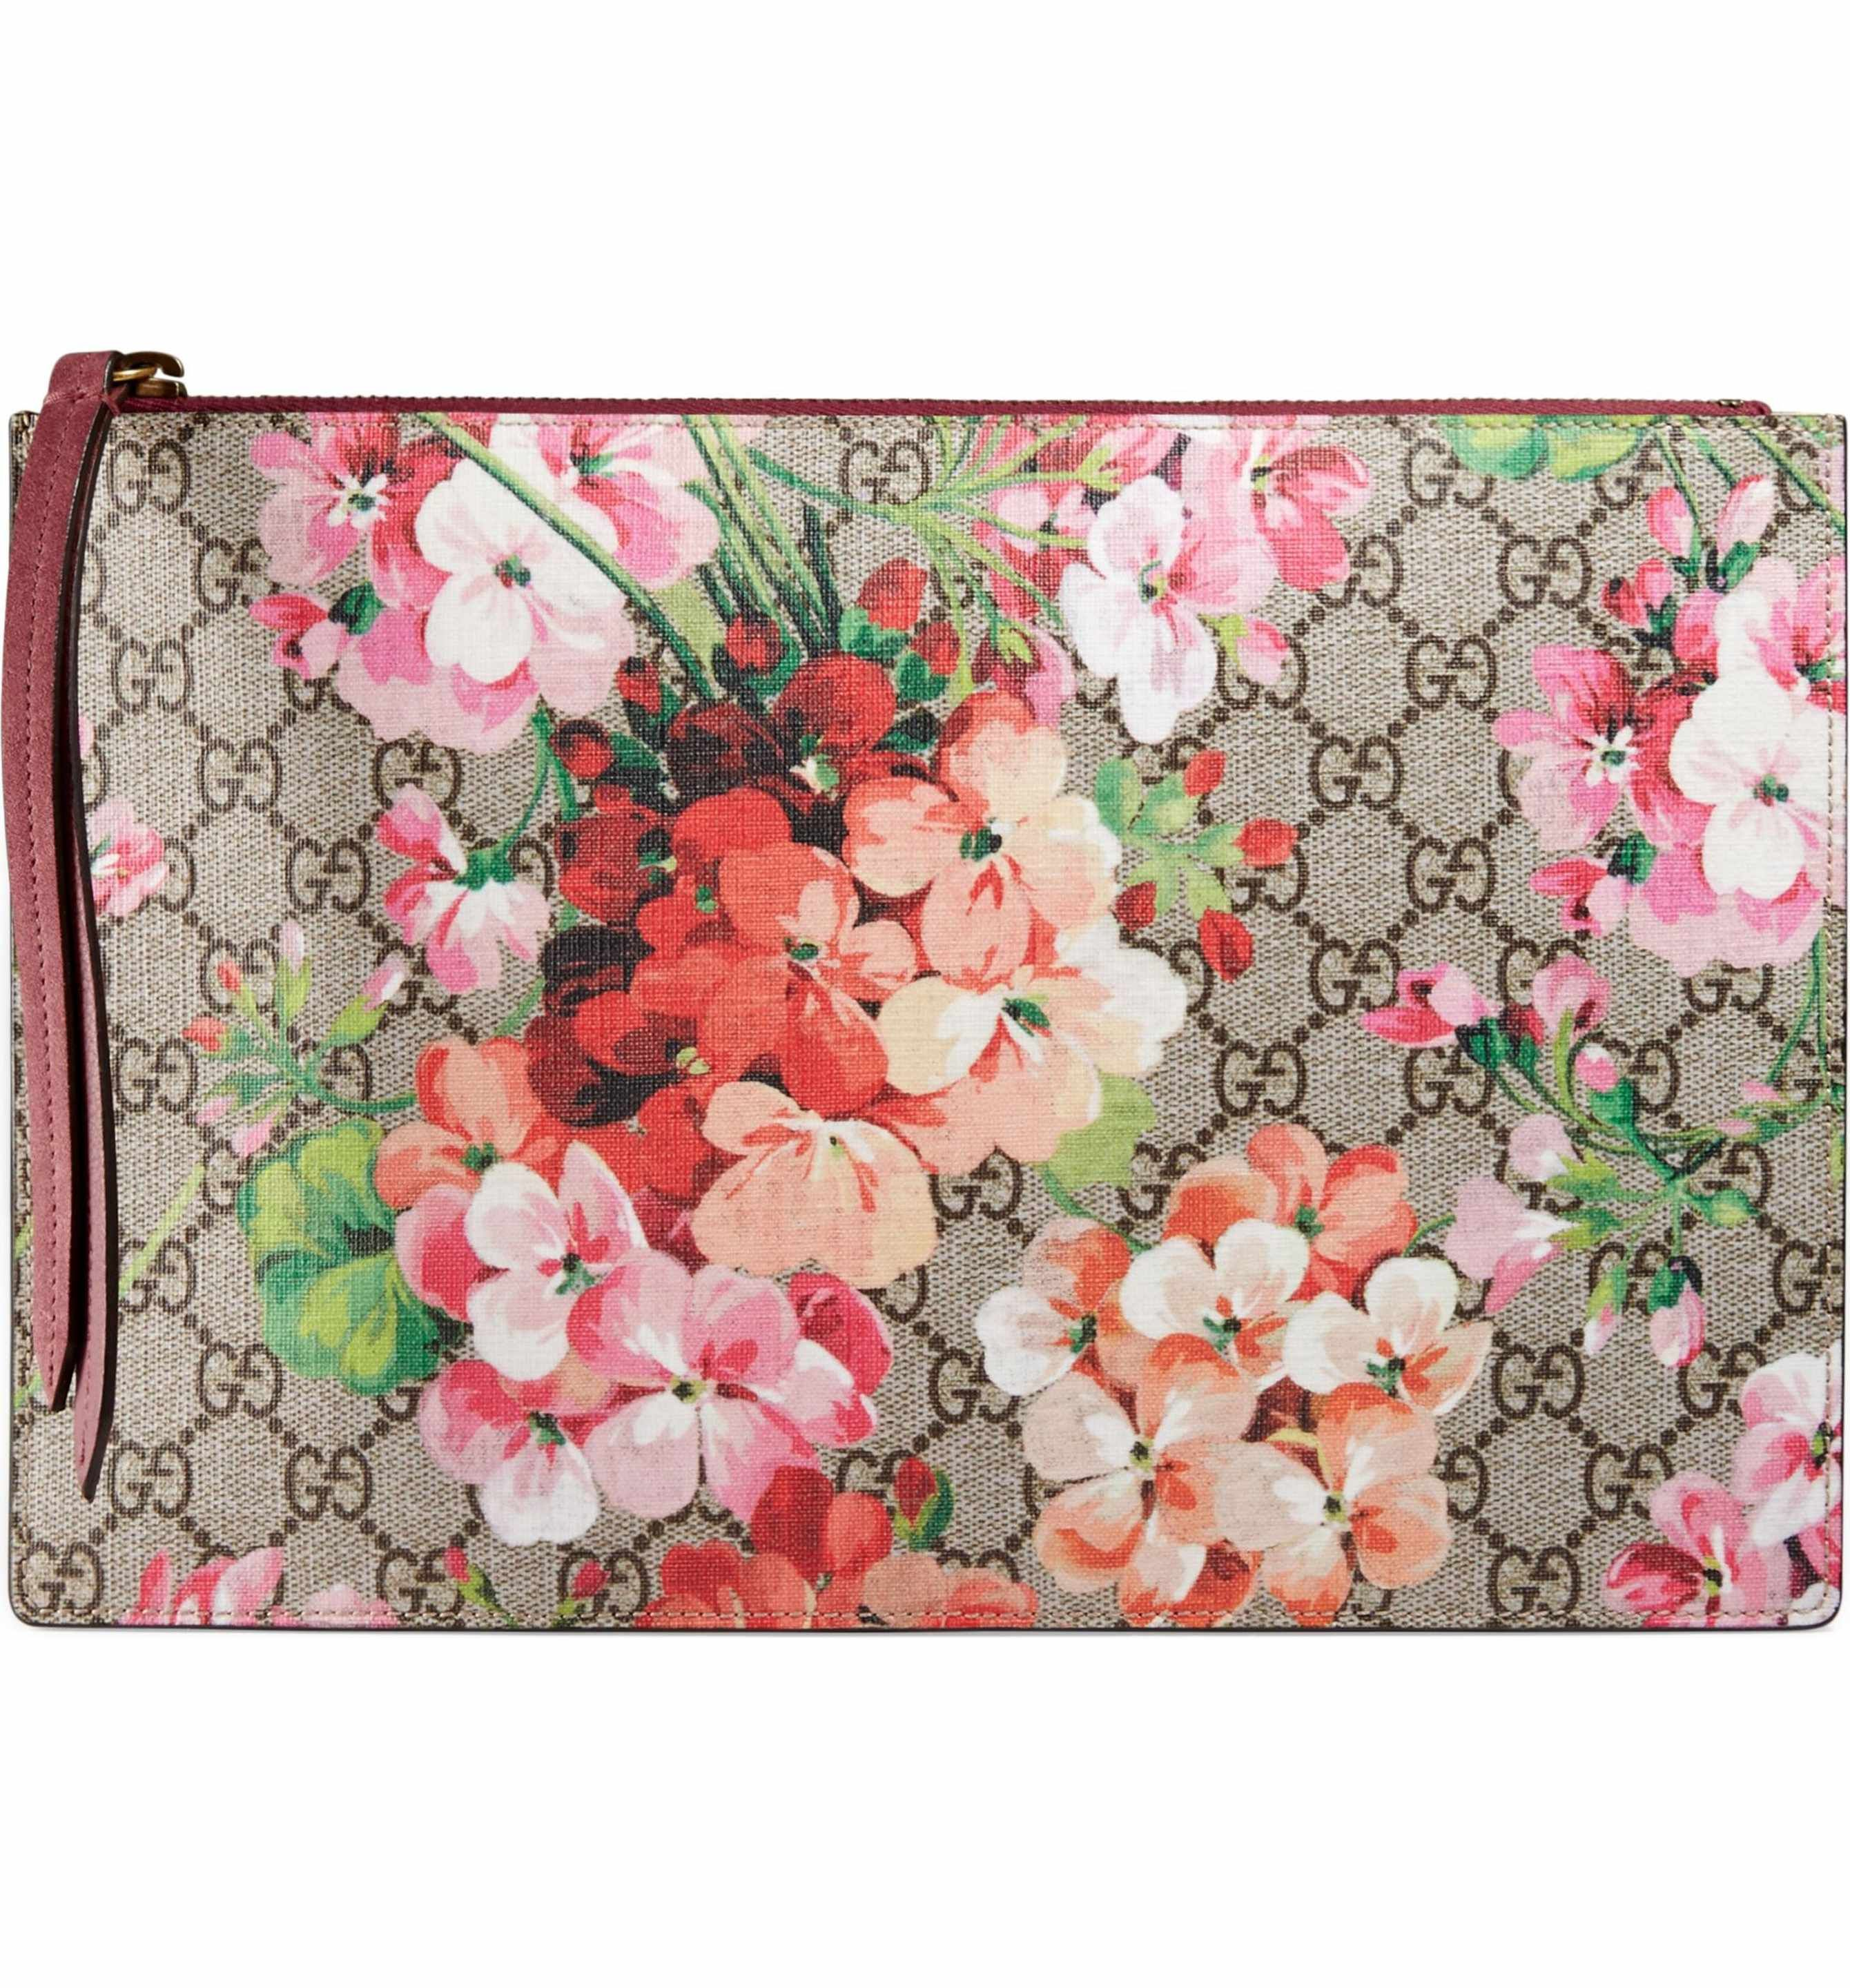 589aa494cb6 Main Image - Gucci GG Blooms Large Canvas   Suede Pouch